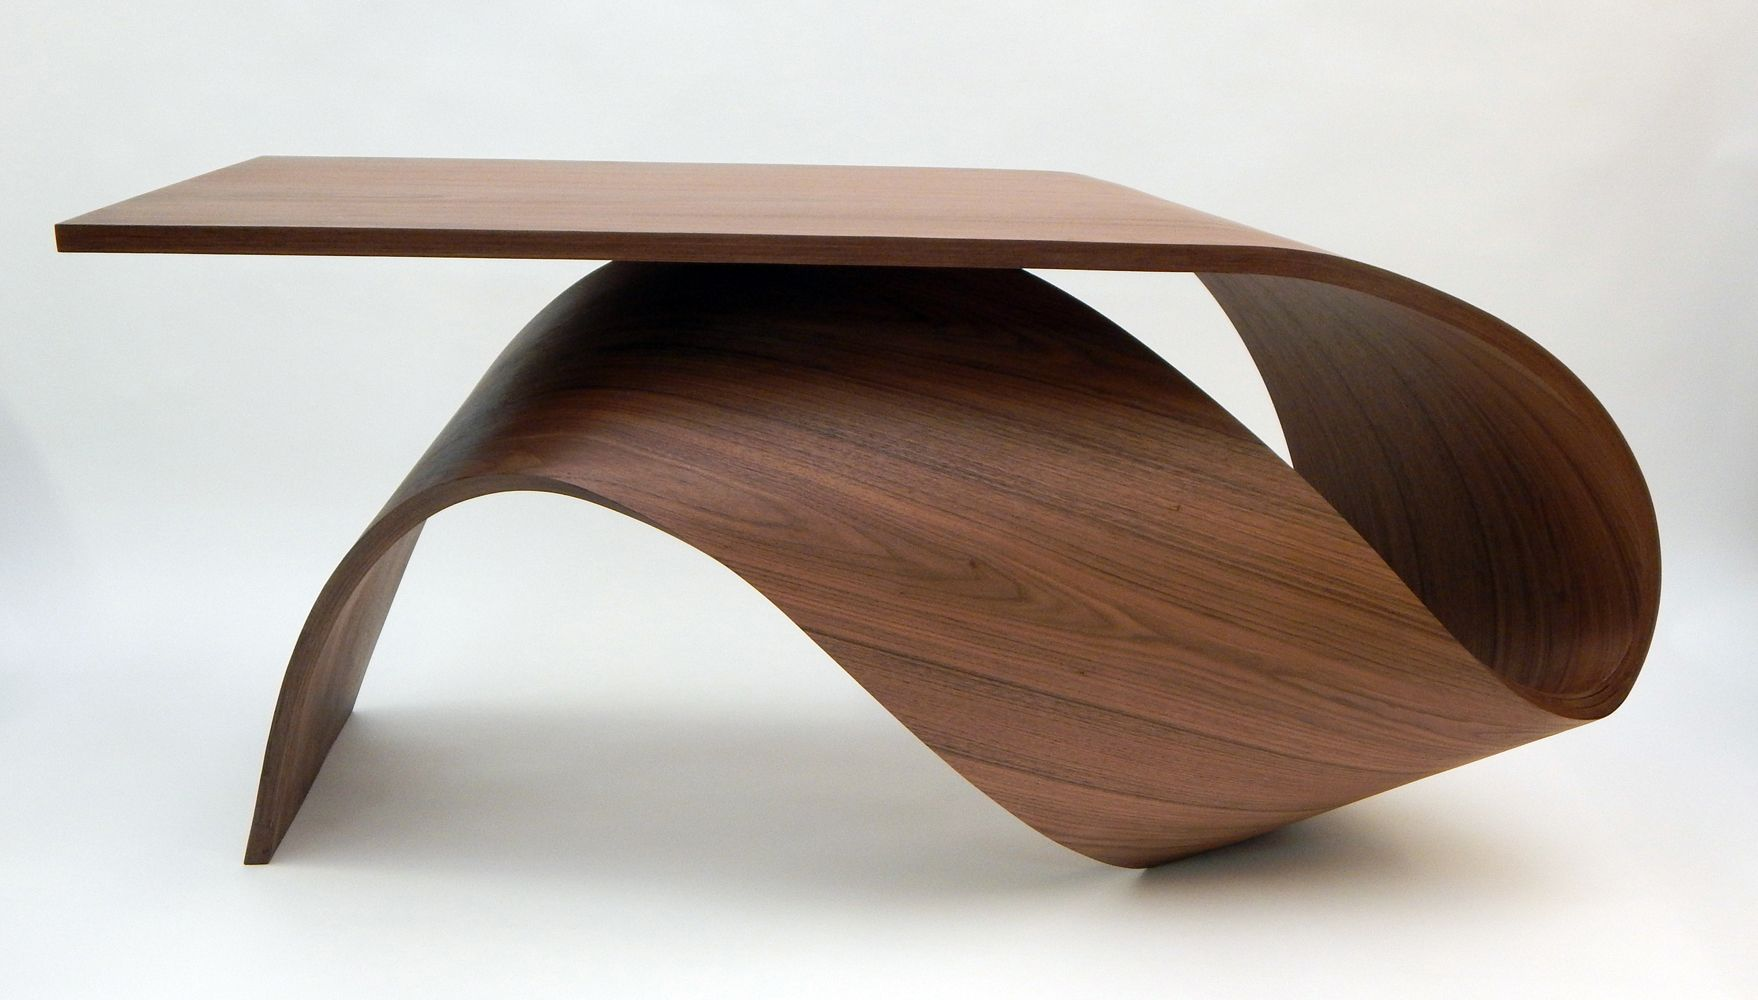 Curved wood furniture design images for French furniture designers modern